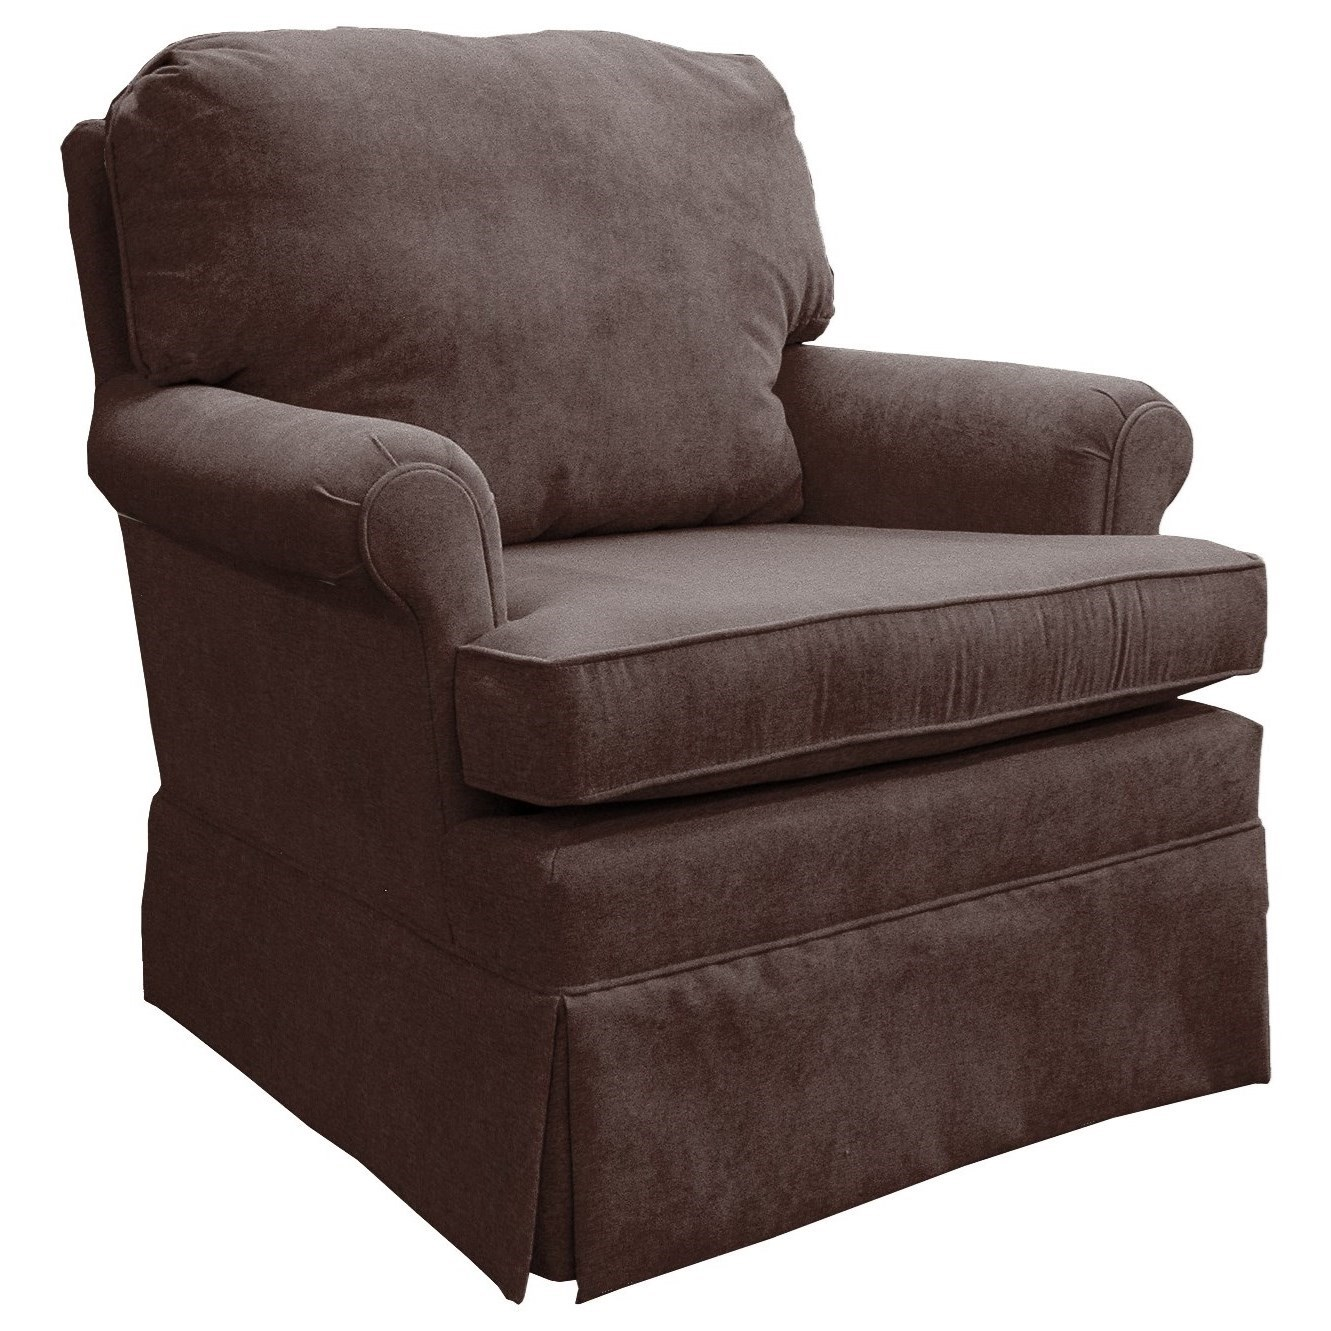 Best home furnishings patoka 2617 traditional swivel for Best furniture outlet